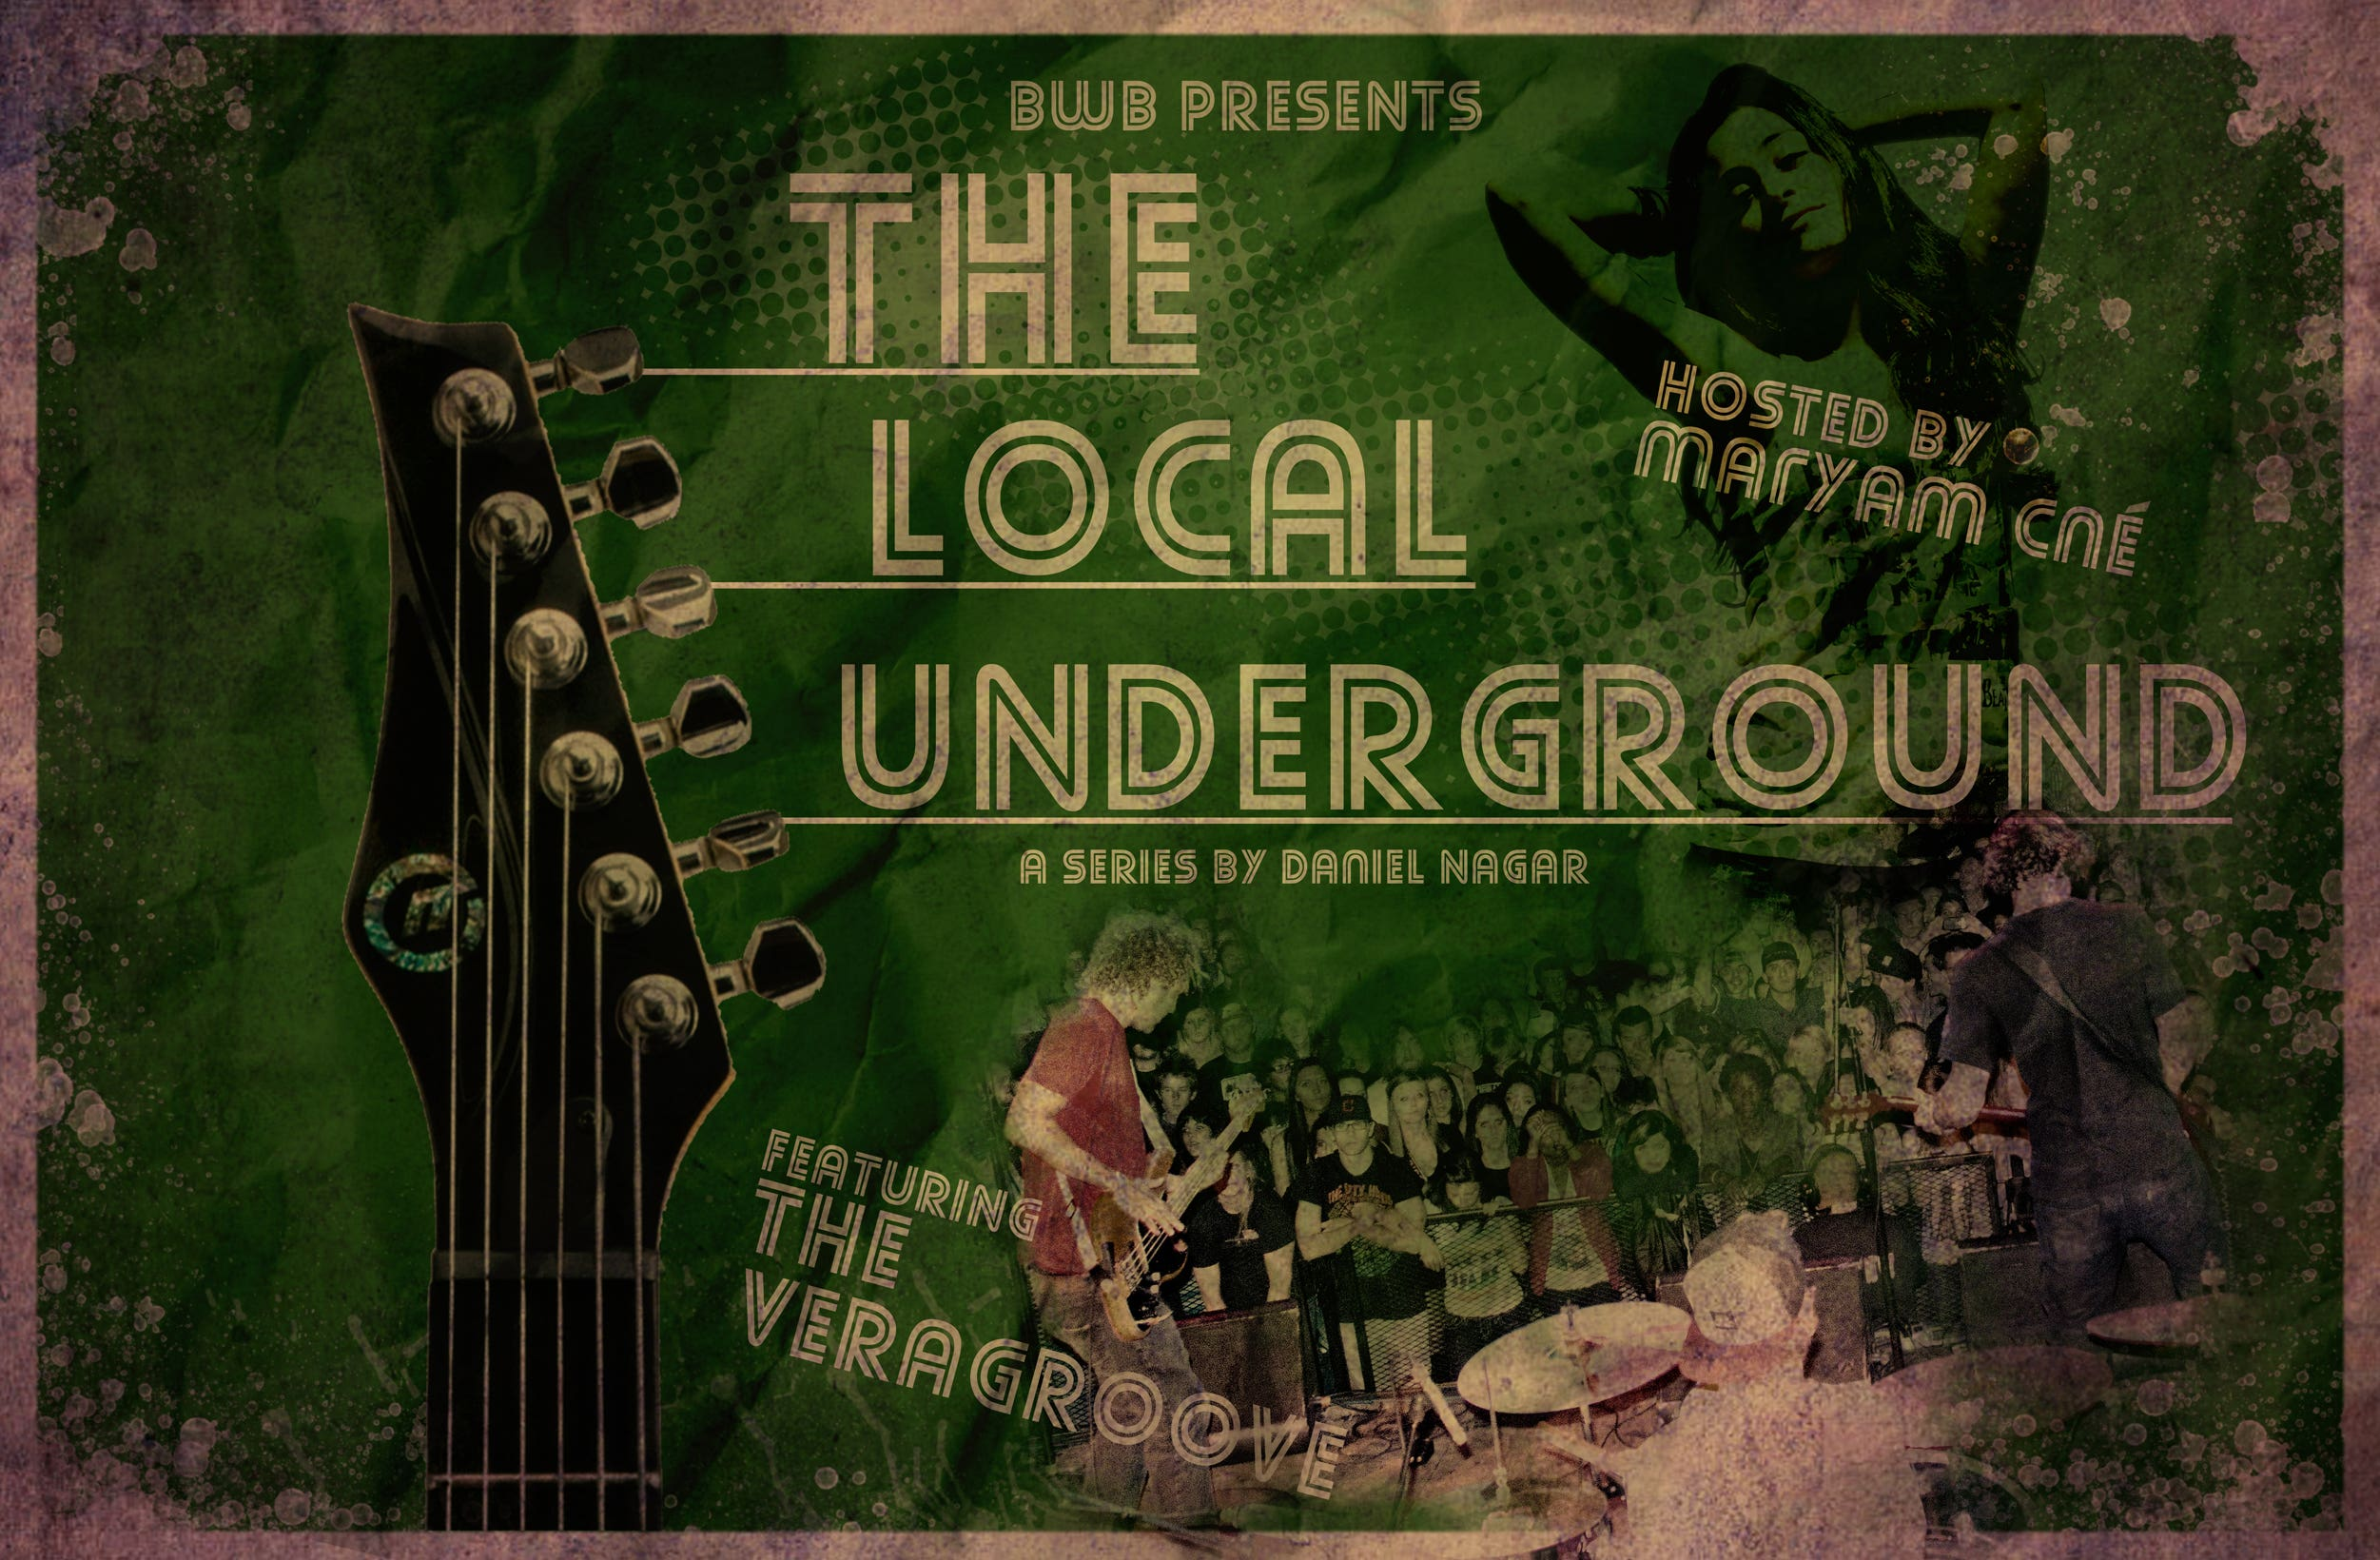 Local Underground - Promotional Poster